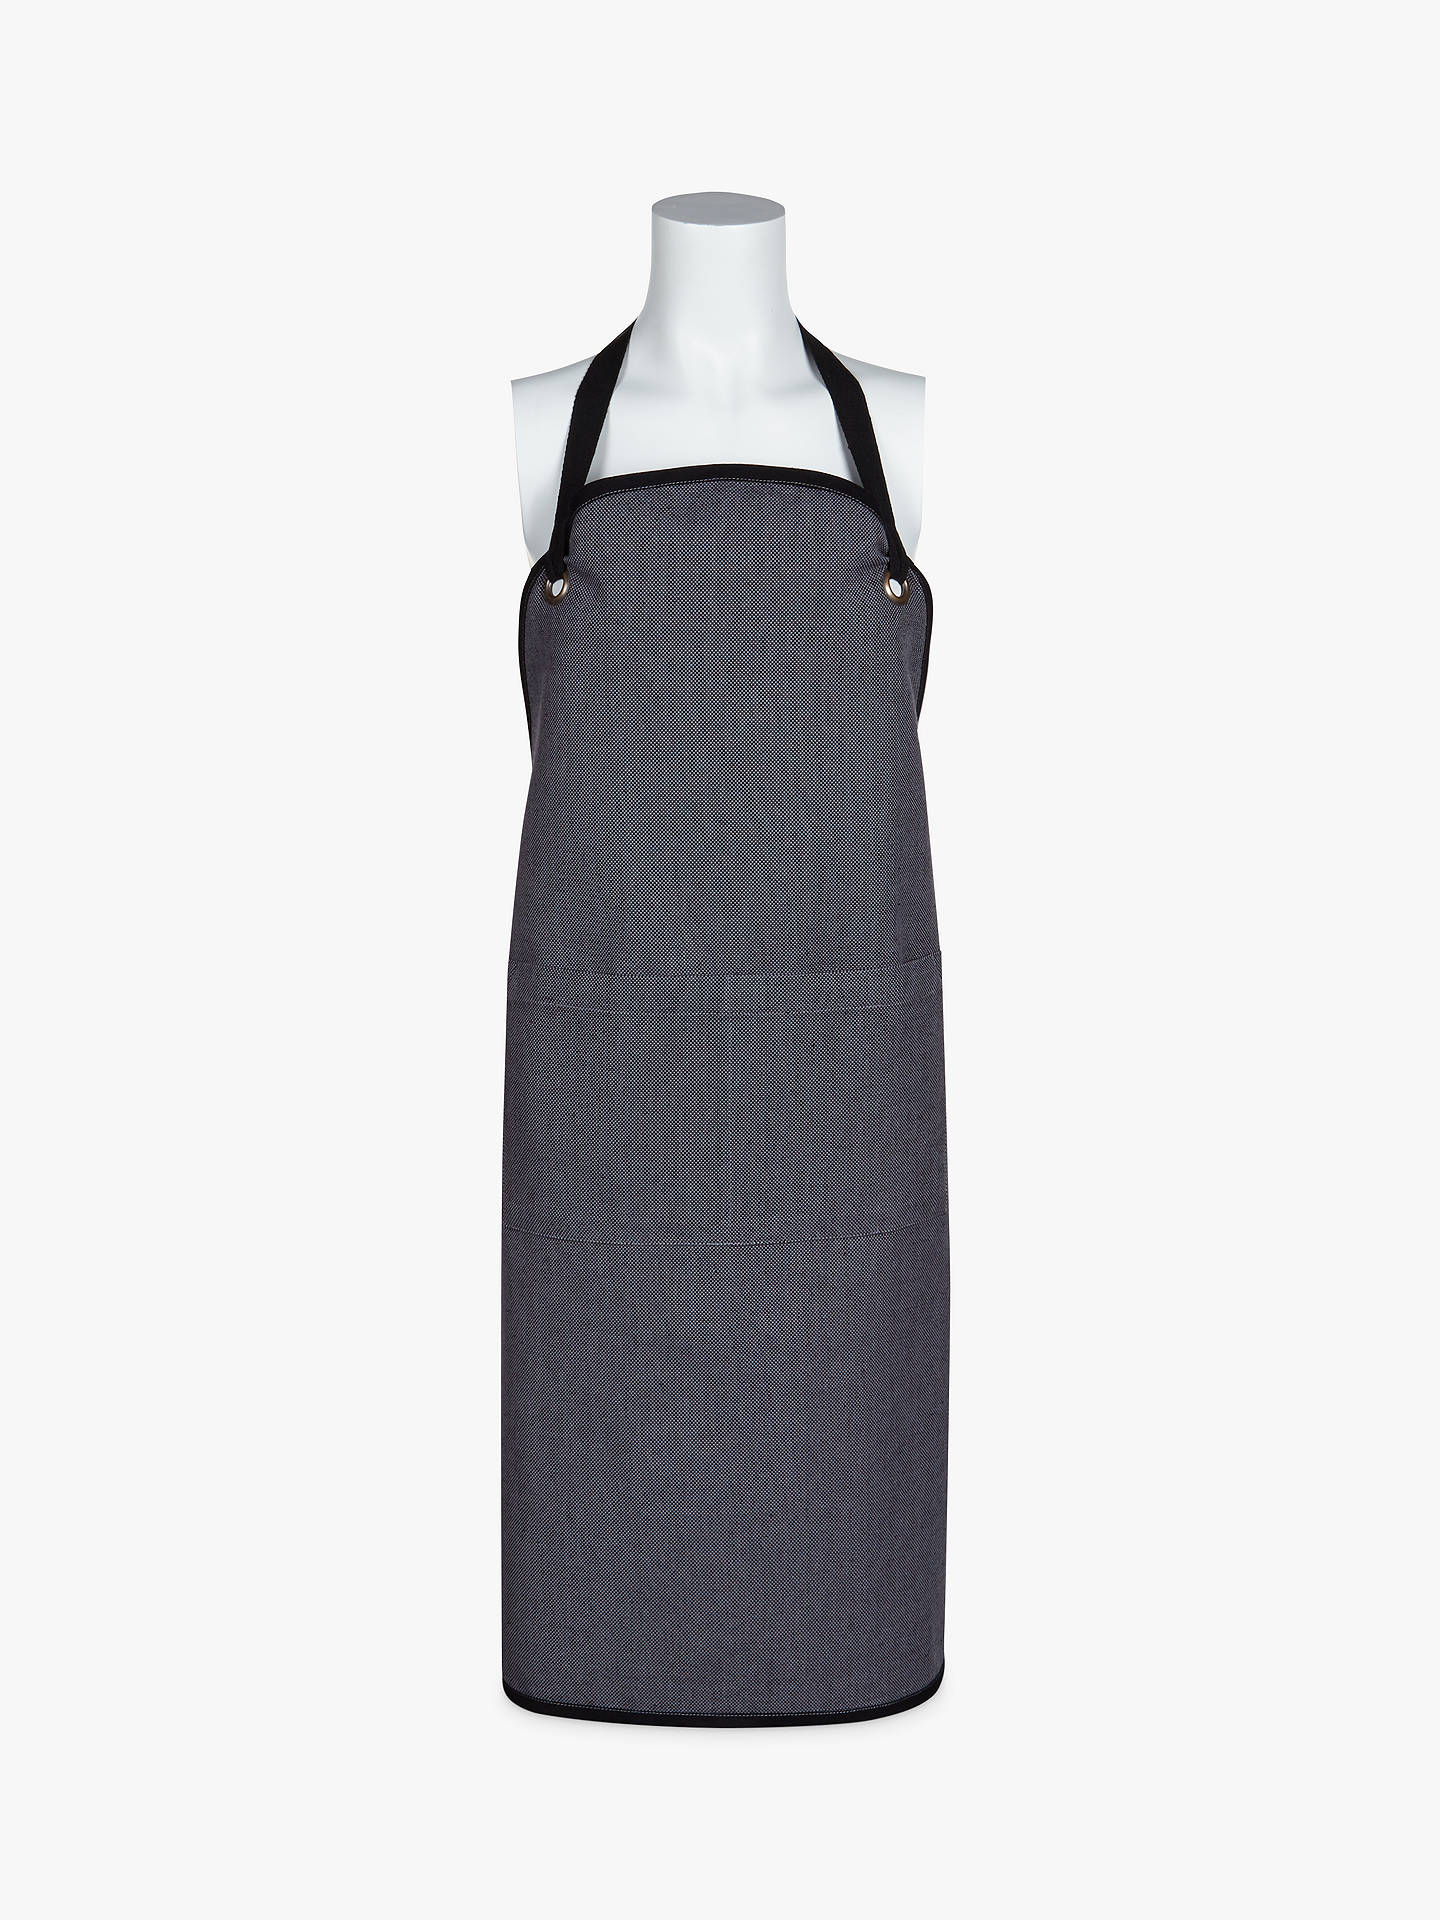 BuyJohn Lewis & Partners Chefs Collection Apron, Grey / Black Online at johnlewis.com